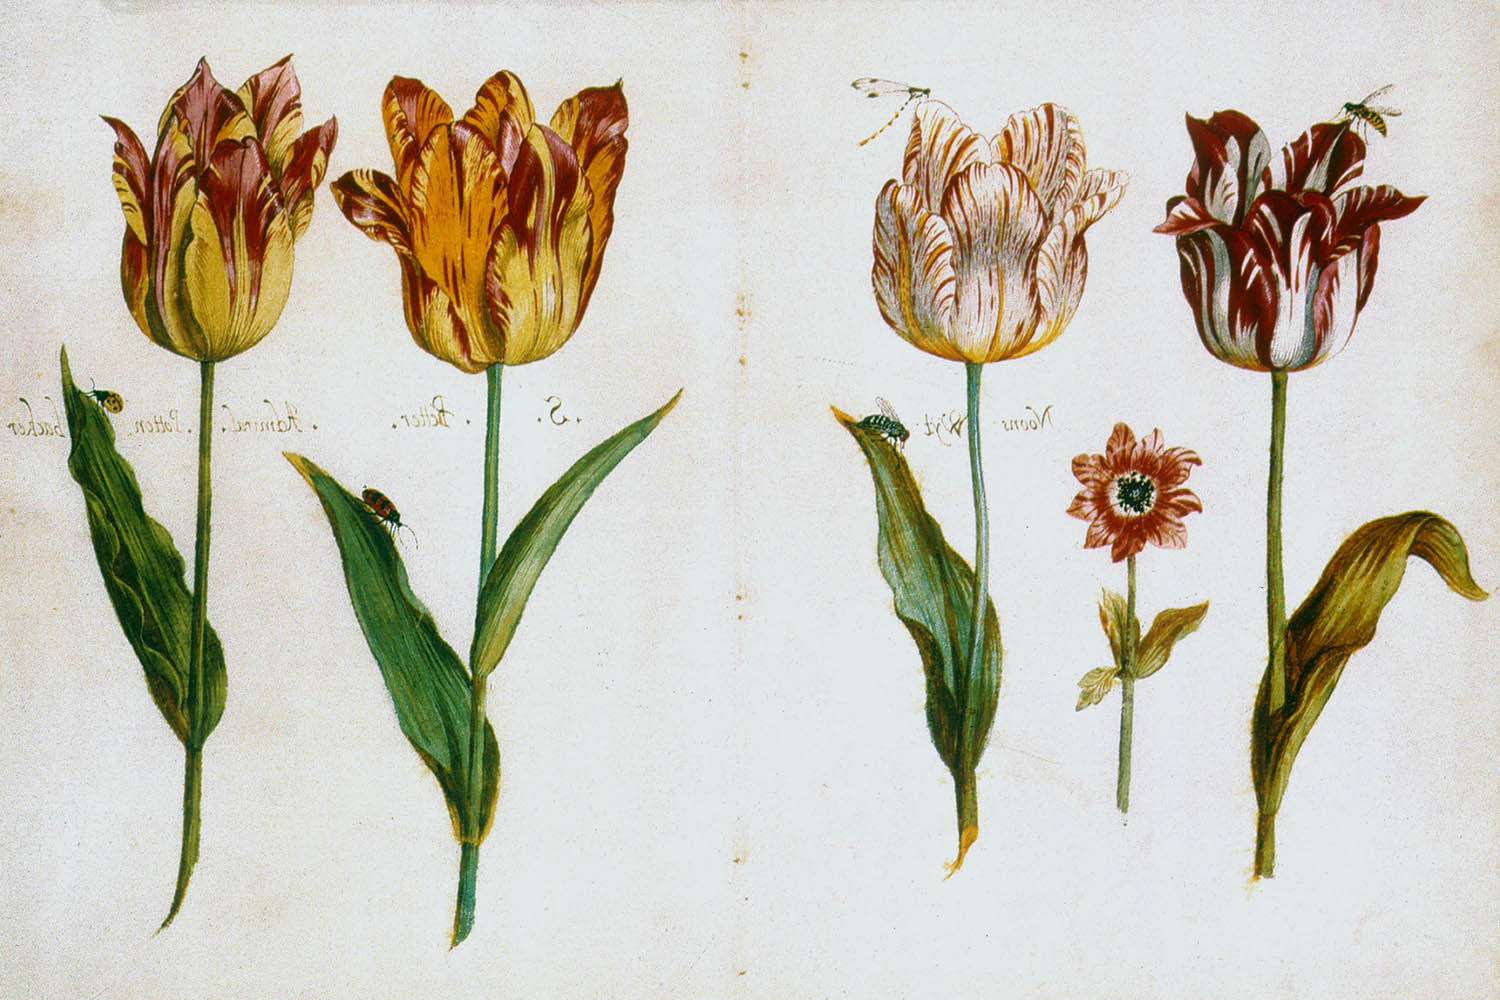 Tulipmania: An Overblown Crisis? | History Today